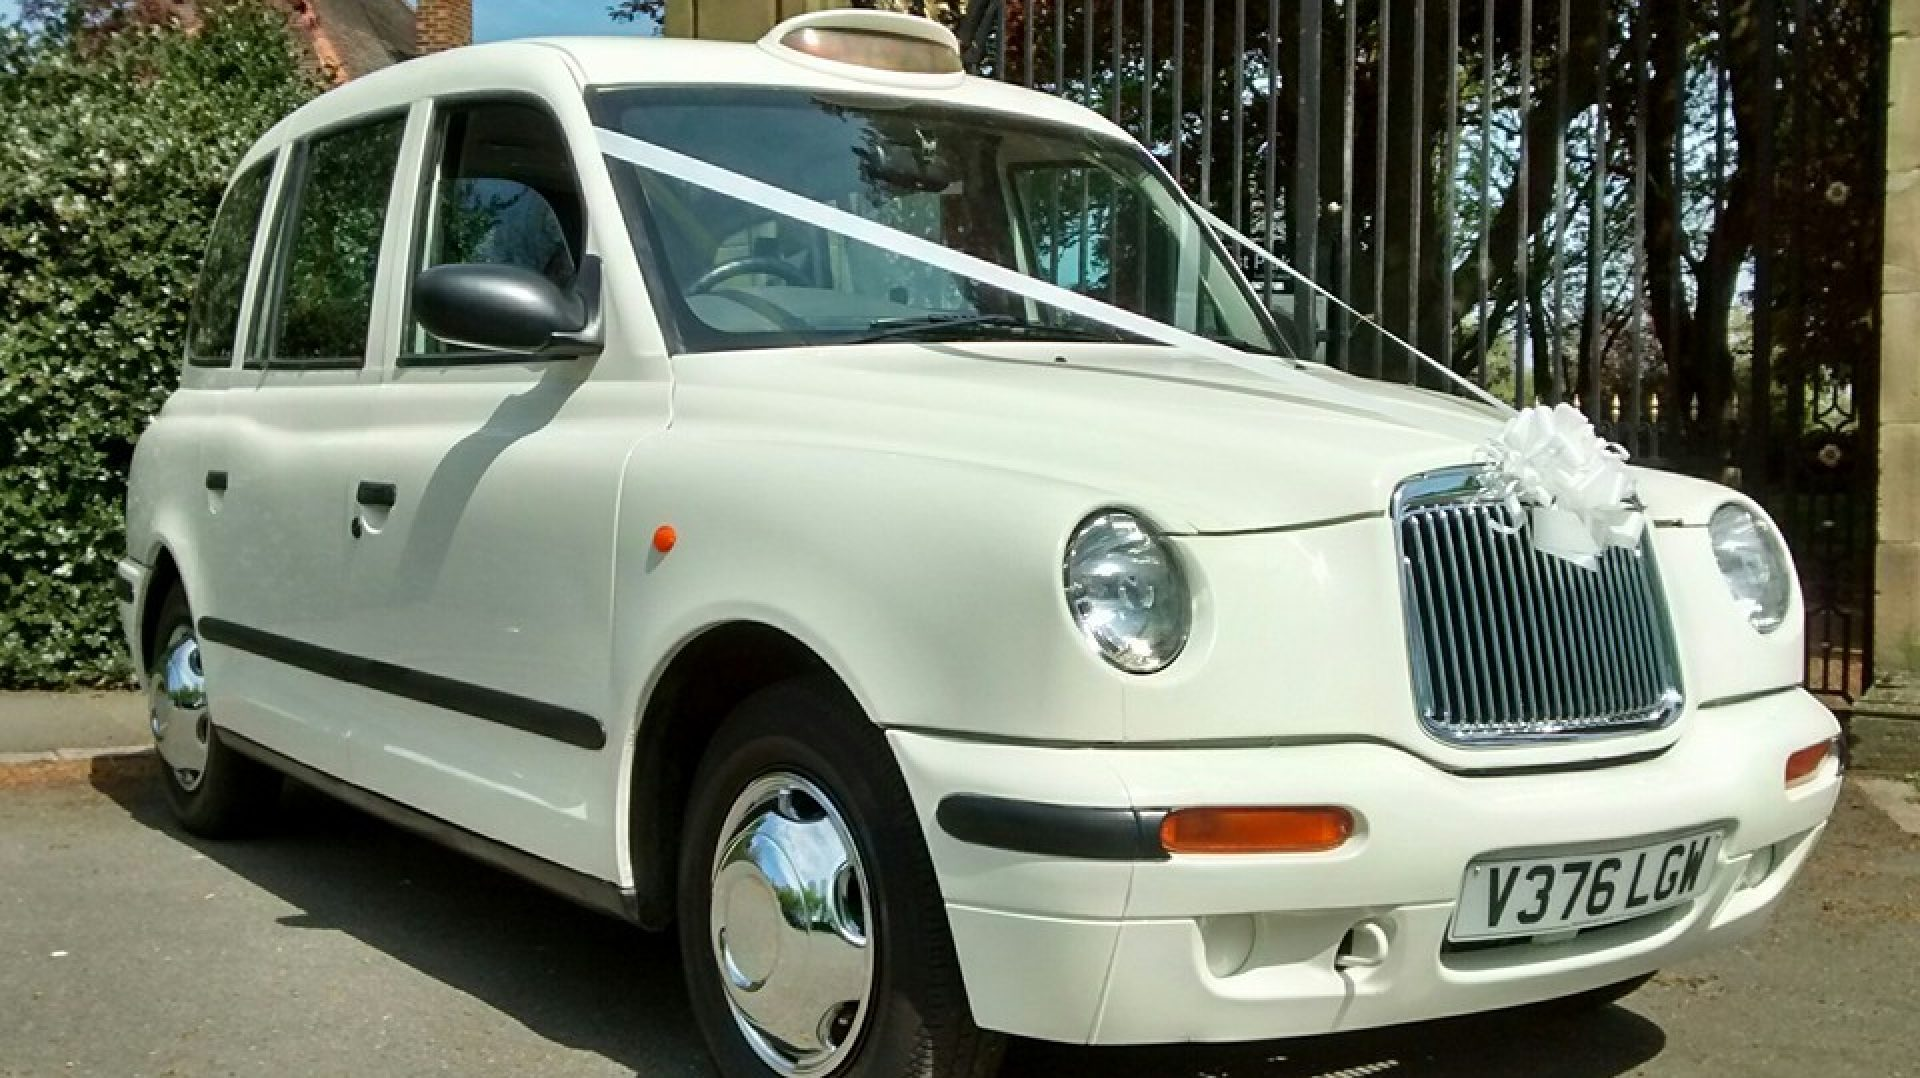 White Taxi Weddings